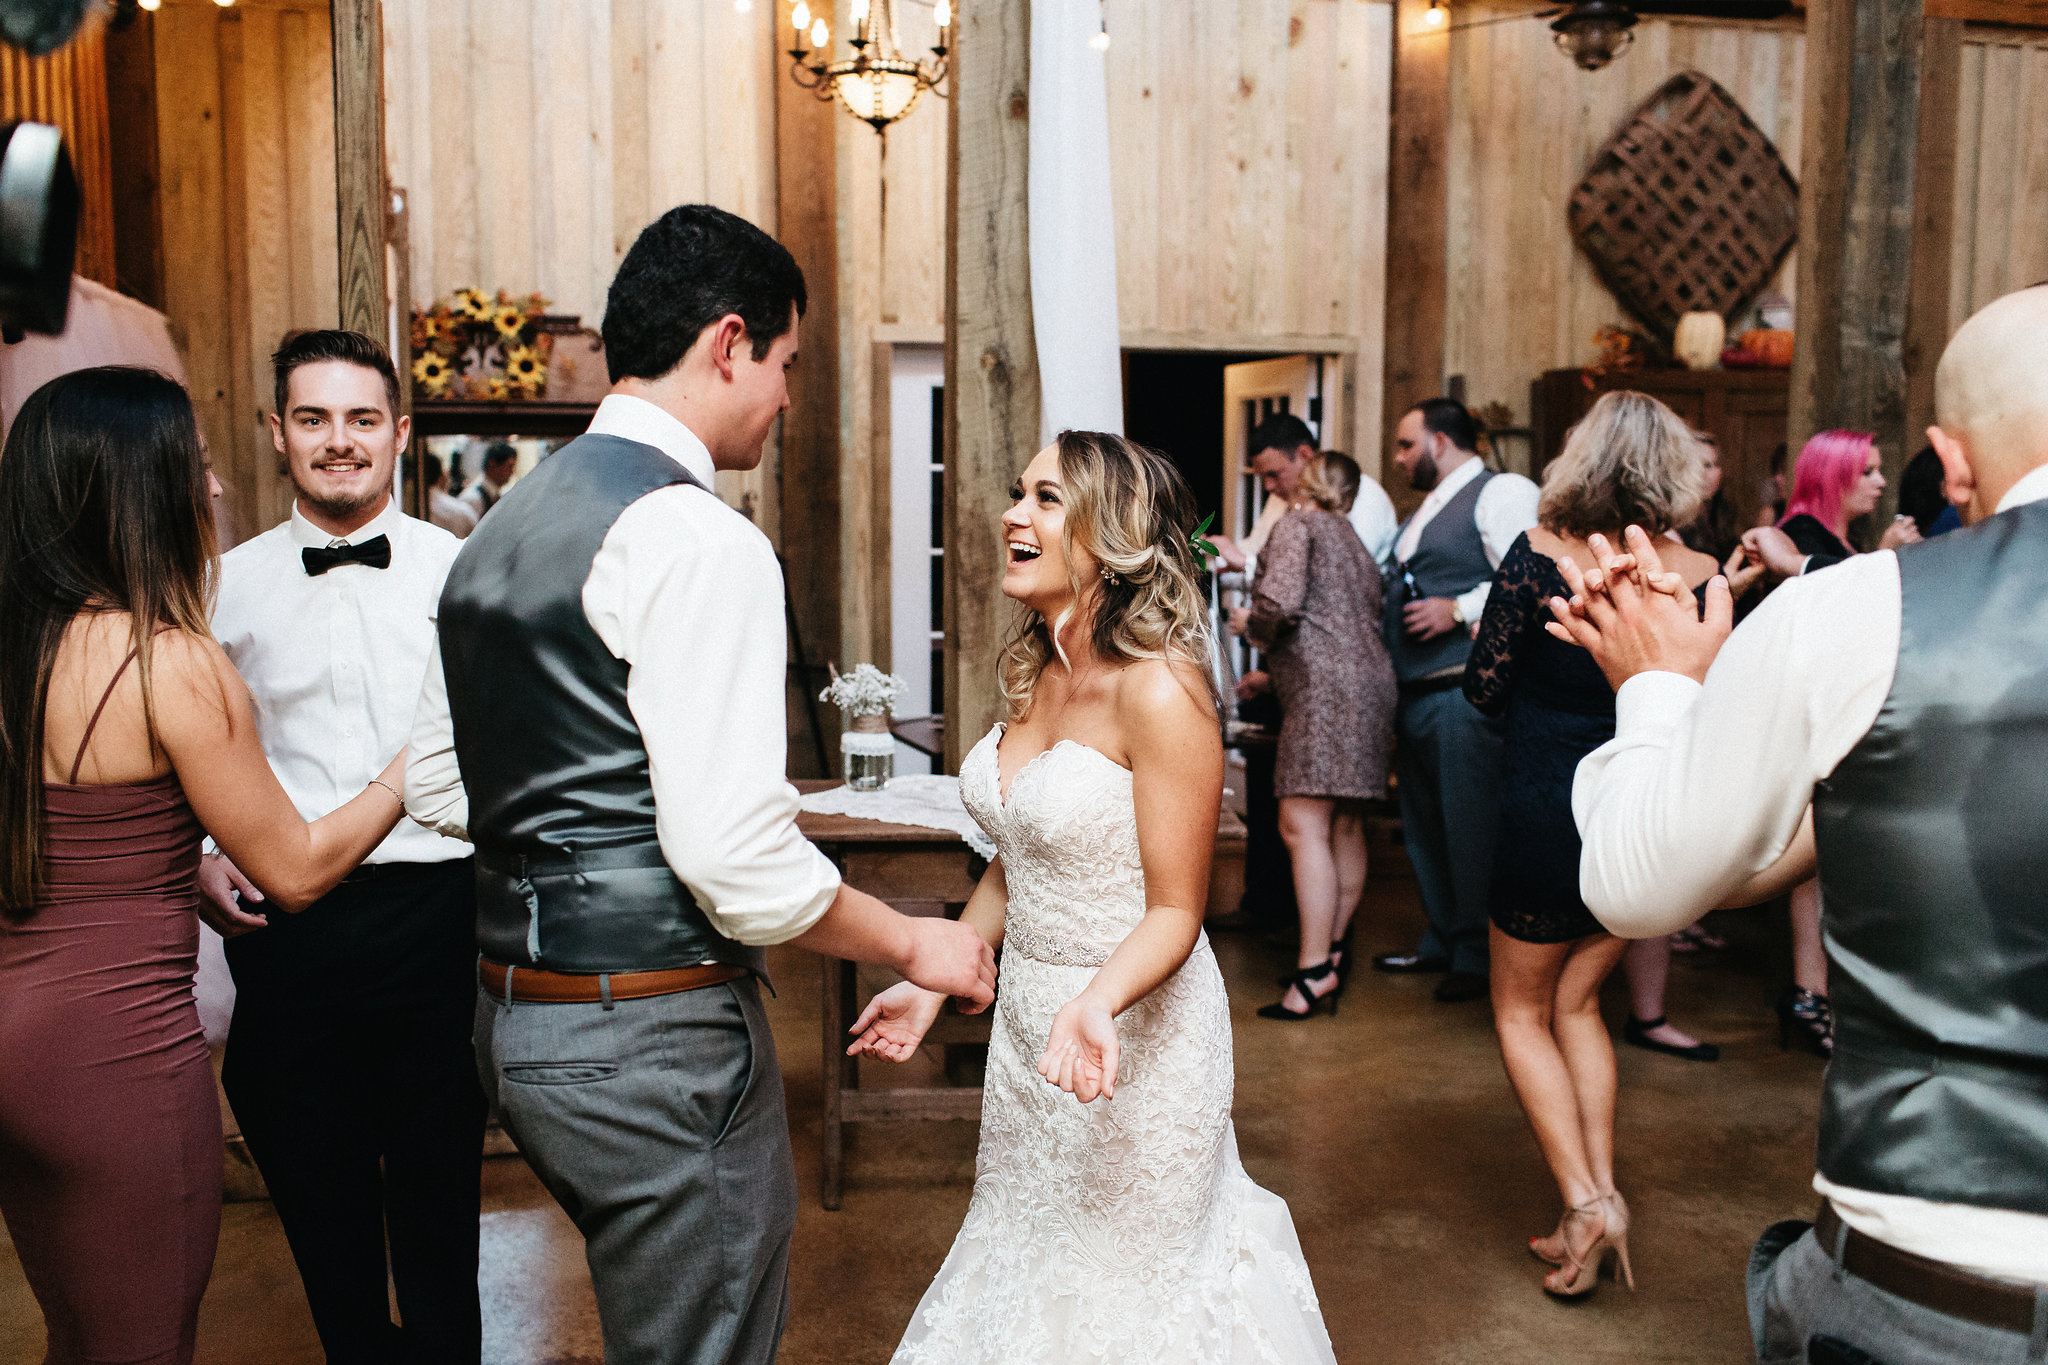 Ashley&NathanMarried2017-11-10at19.26.56PM28.jpg